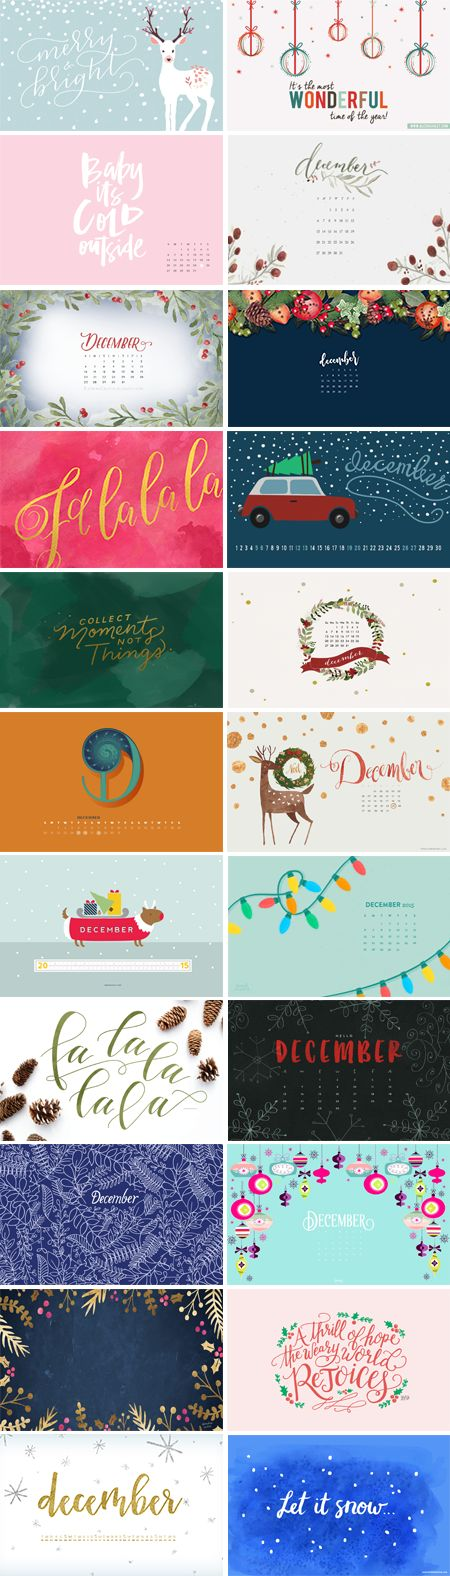 Happy December everyone! I wish you the most amazing holiday season, and a great New Year! 1. Amanda Genther  |  2. Alesha Haley  | 3. May Designs 4. Lovely Day Fleur  | 5. Katrina Crouch  |  6. Designer Blogs 7.…